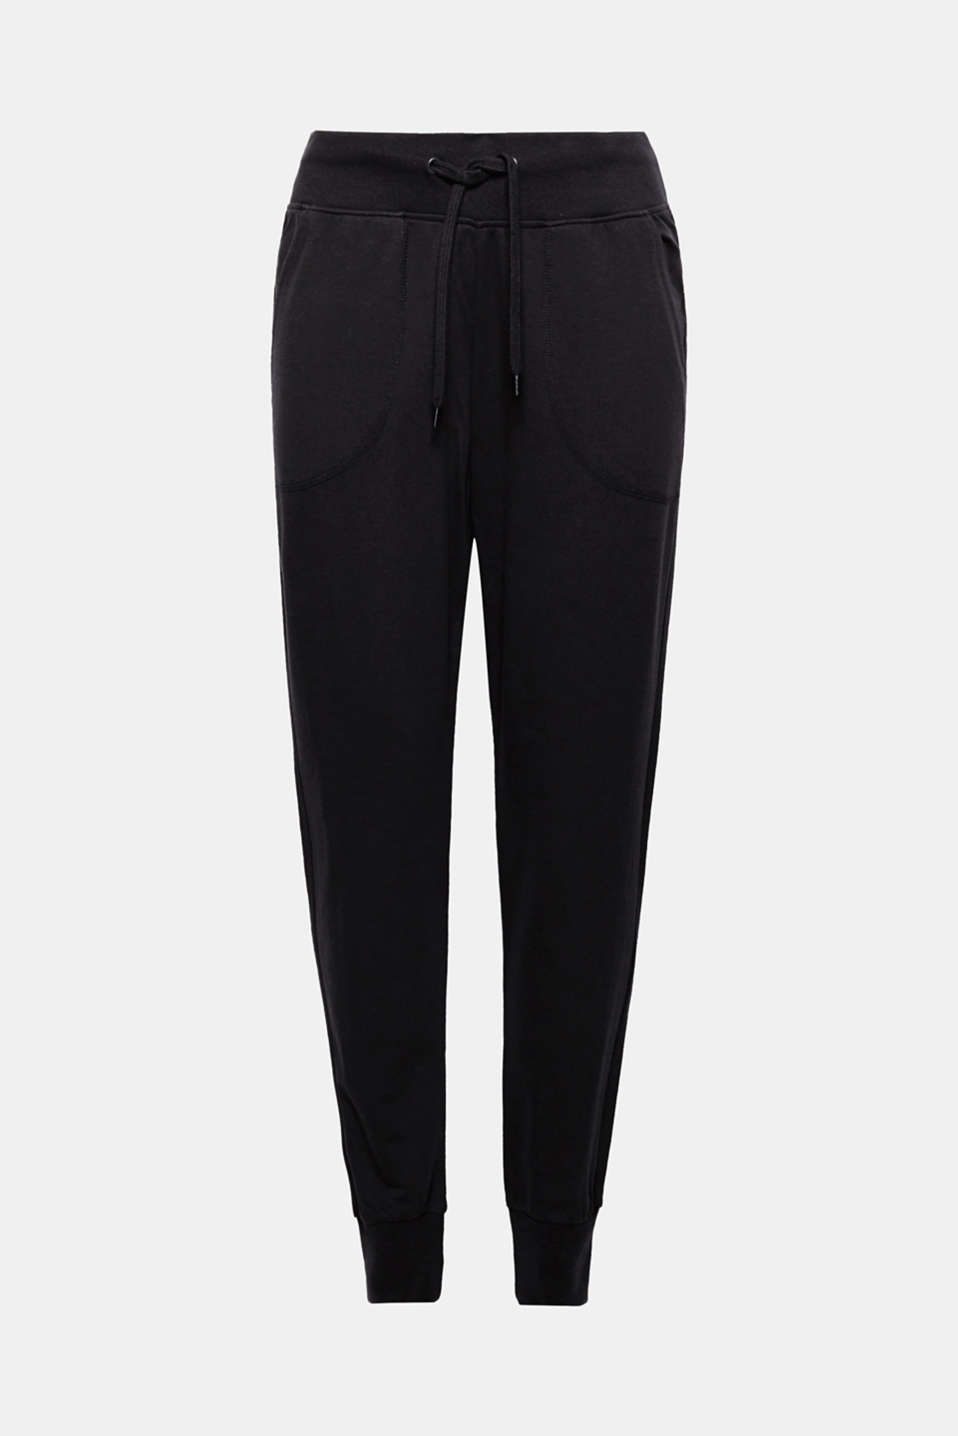 For sport or relaxing at home: The shiny logo print gives these jersey trousers with ribbed cuffs a special touch!